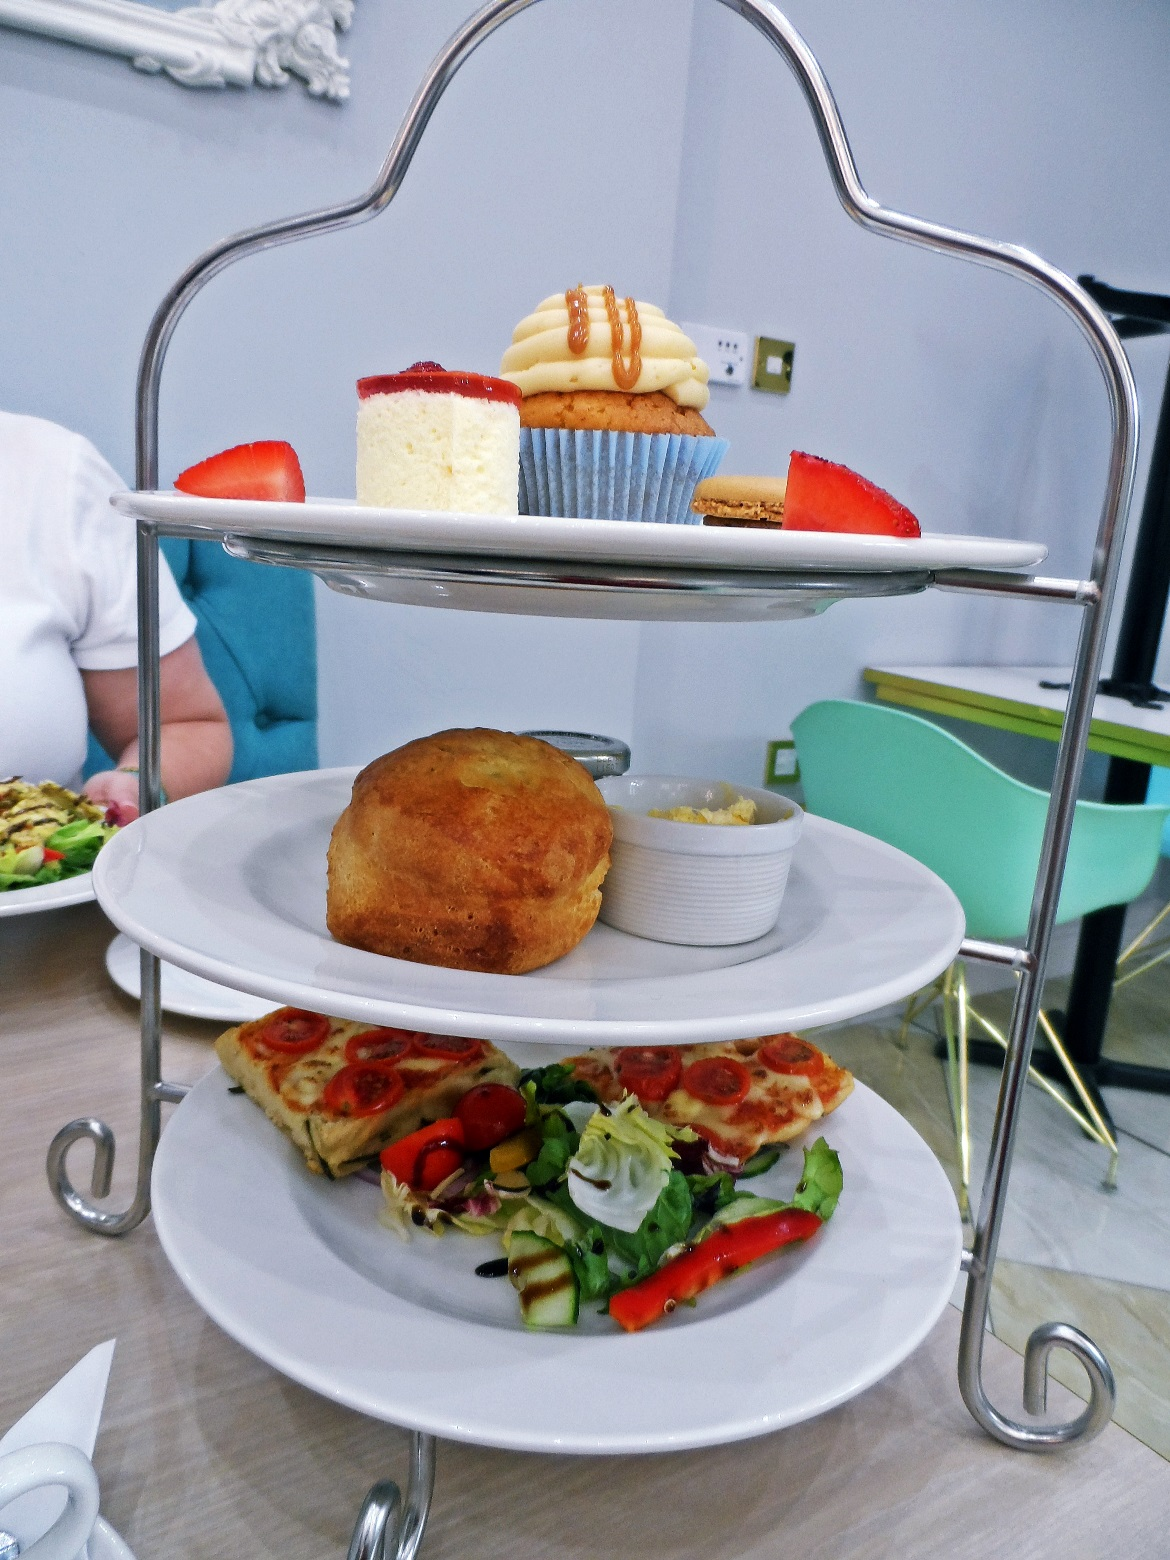 Italian Afternoon Tea - Creams British Luxury Leeds Restaurant Review by BeckyBecky Blogs